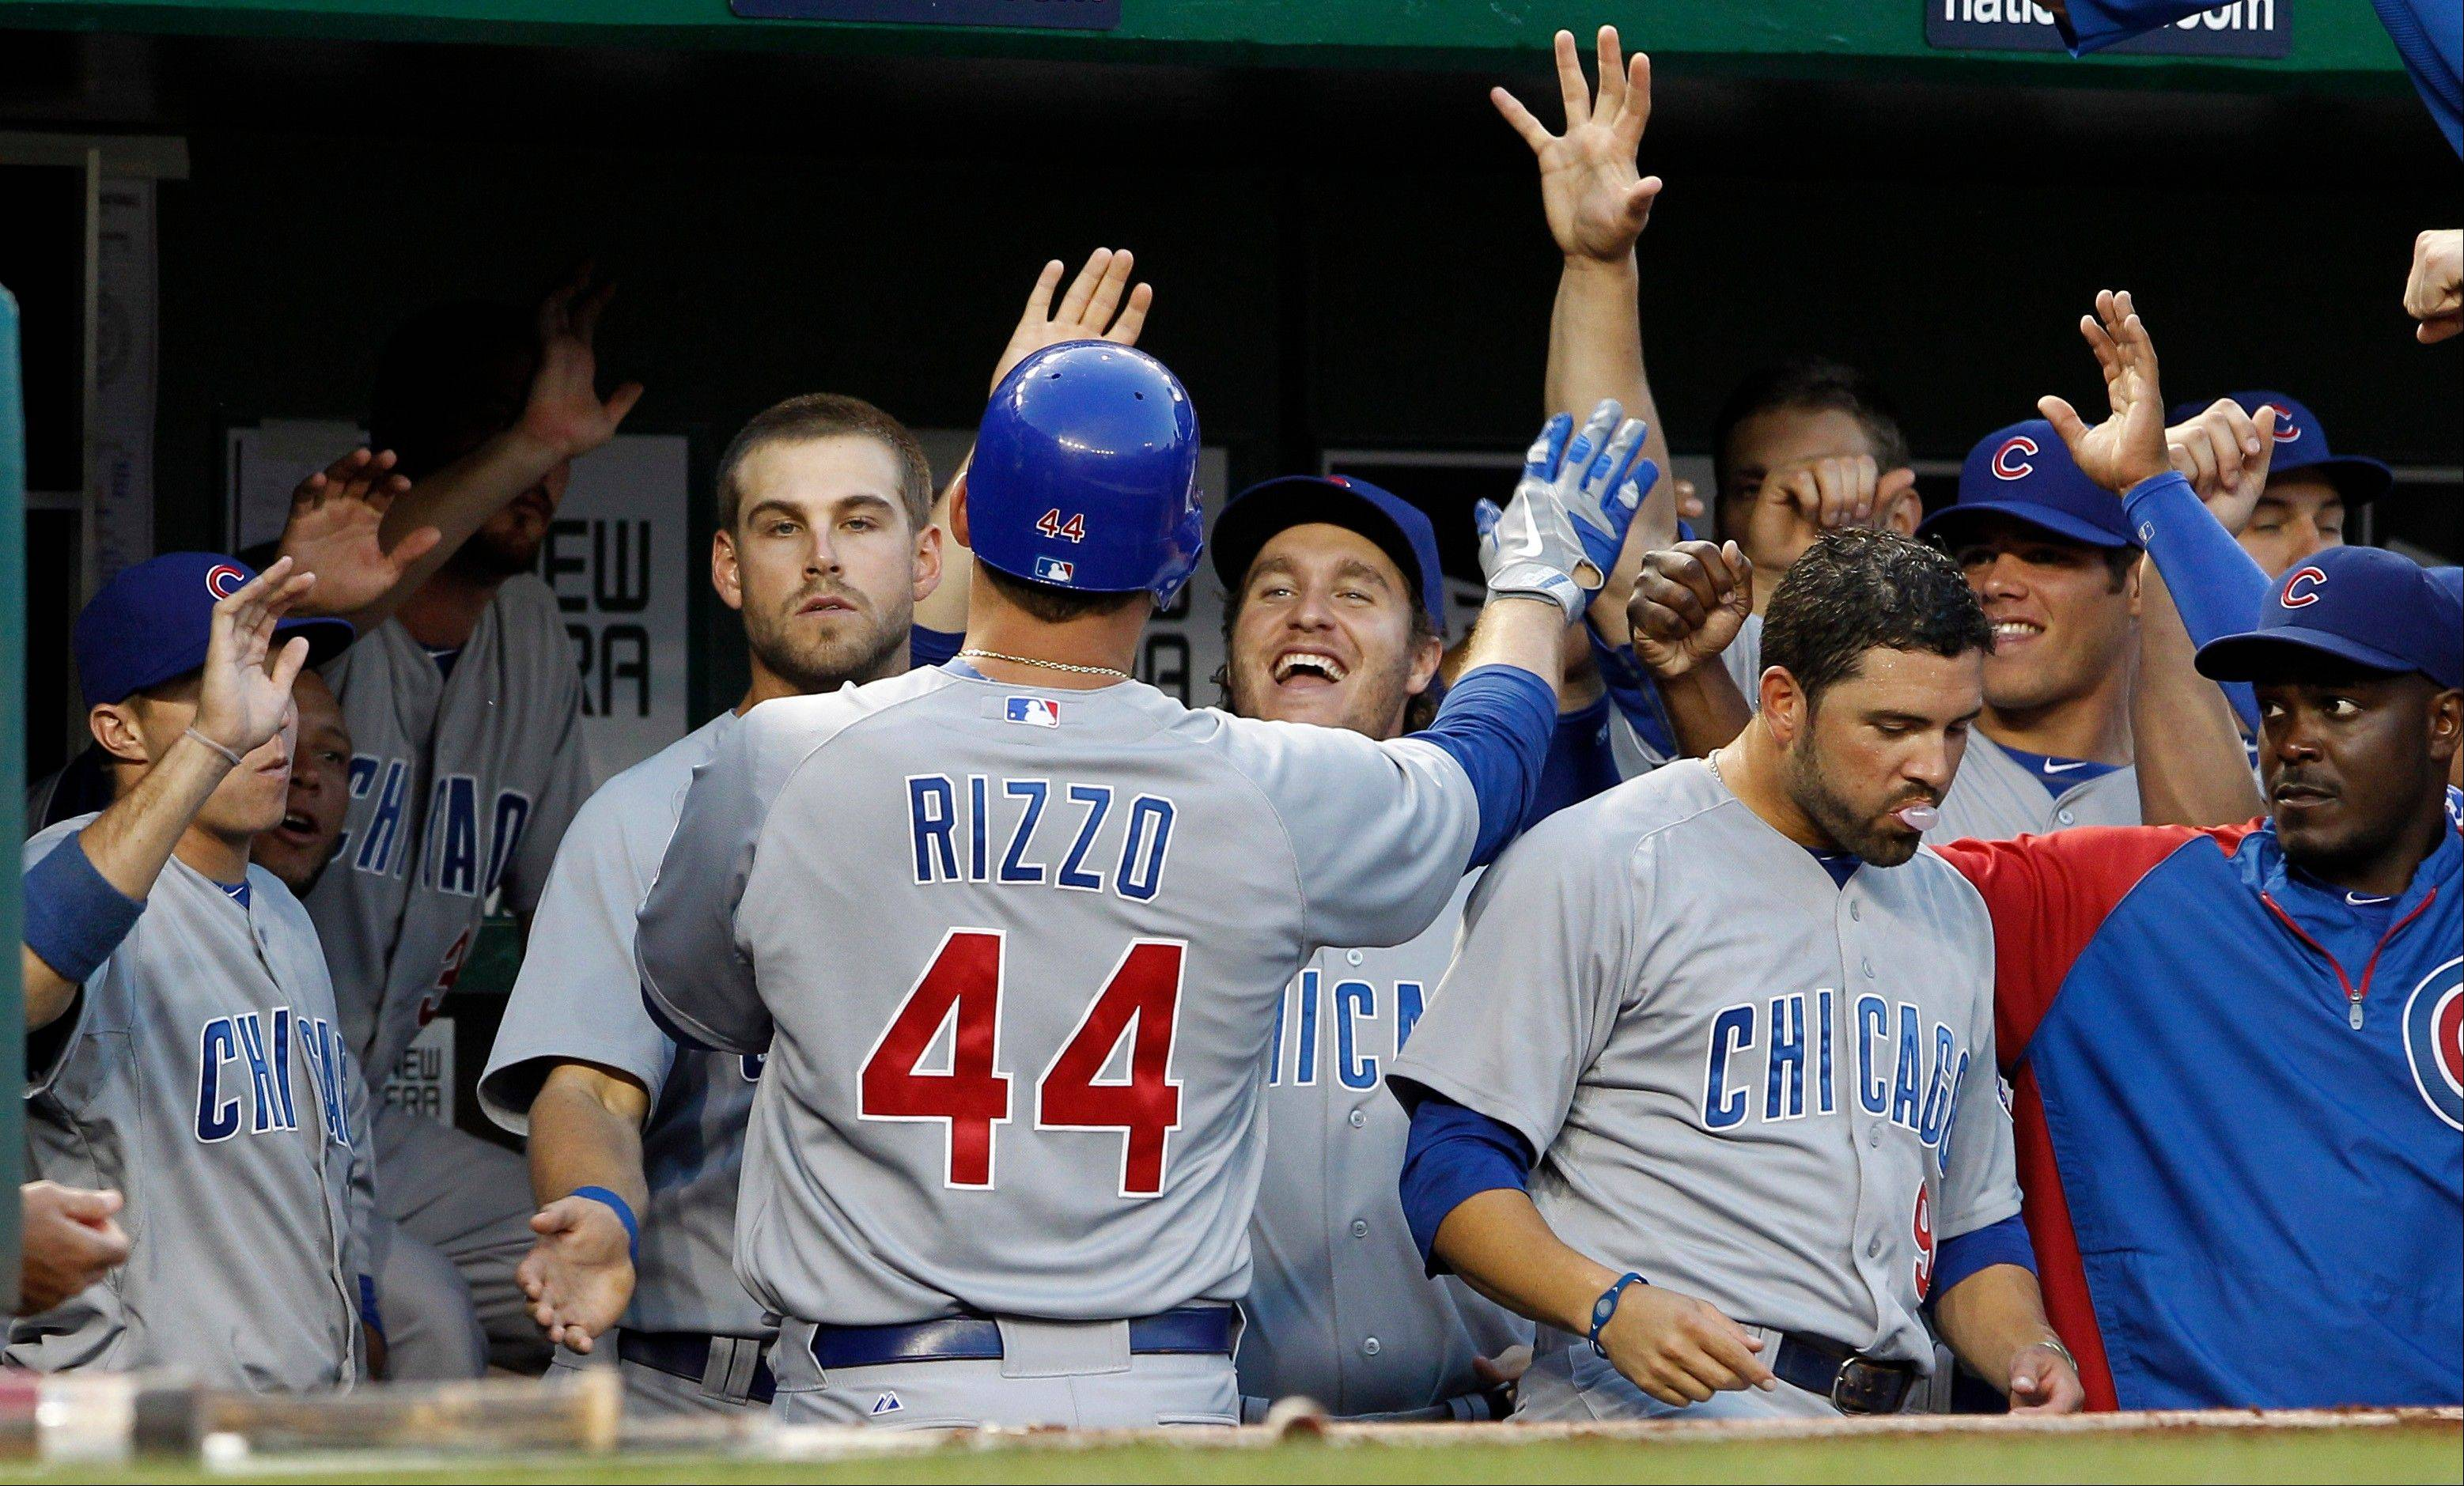 Chicago Cubs' Anthony Rizzo (44) celebrates with teammates after his solo home run during the first inning of a baseball game with the Washington Nationals at Nationals Park, Thursday, Sept. 6, 2012, in Washington.